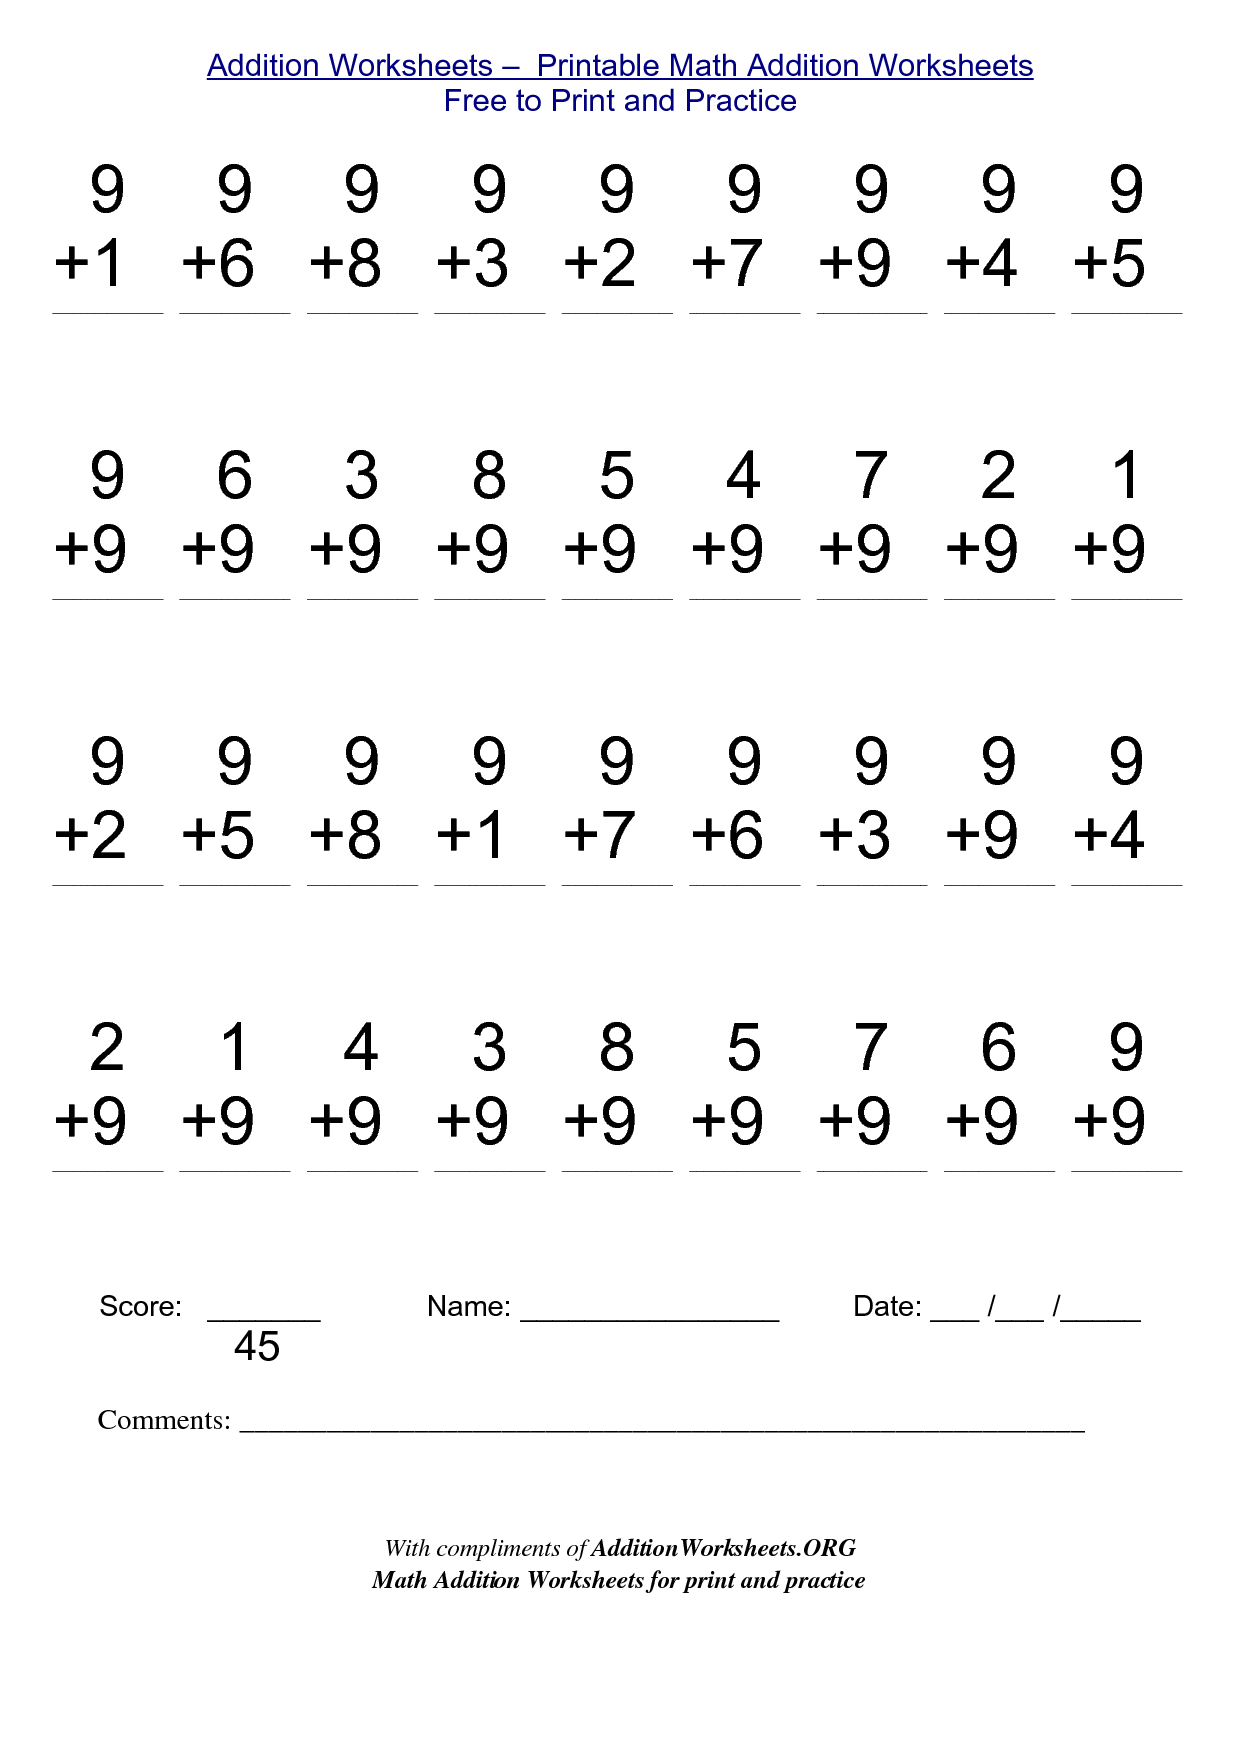 Worksheets Free Math Printable Worksheets singapore math kindergarten worksheets first grade addition printable free to print